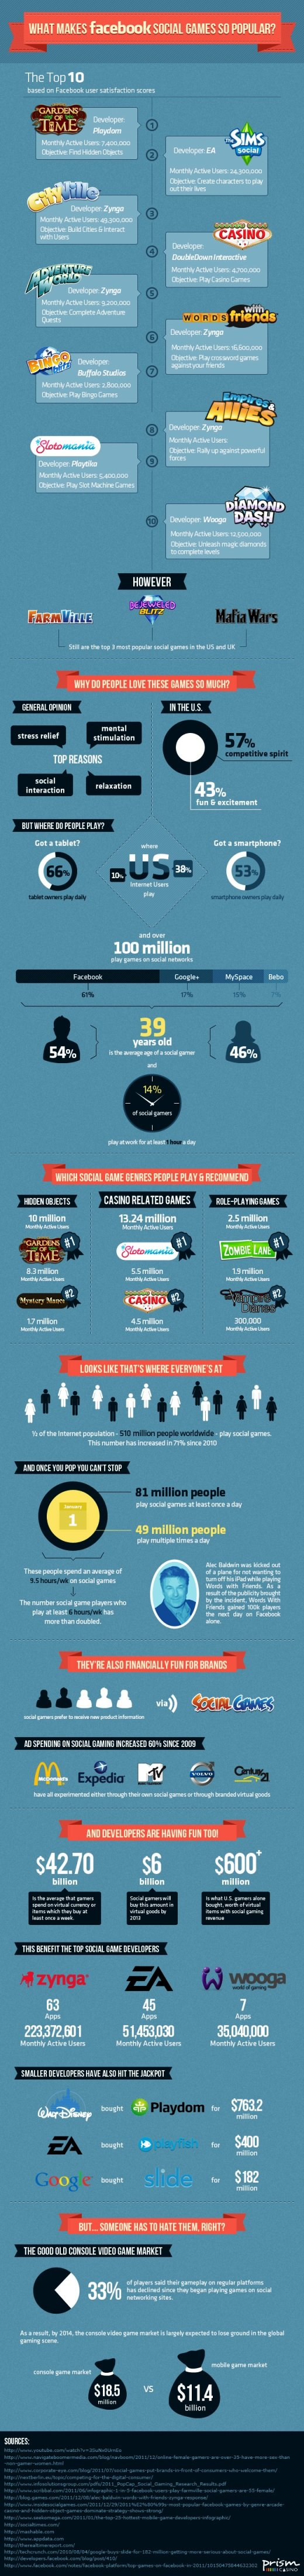 What makes Facebook Social Games so popular #infographic